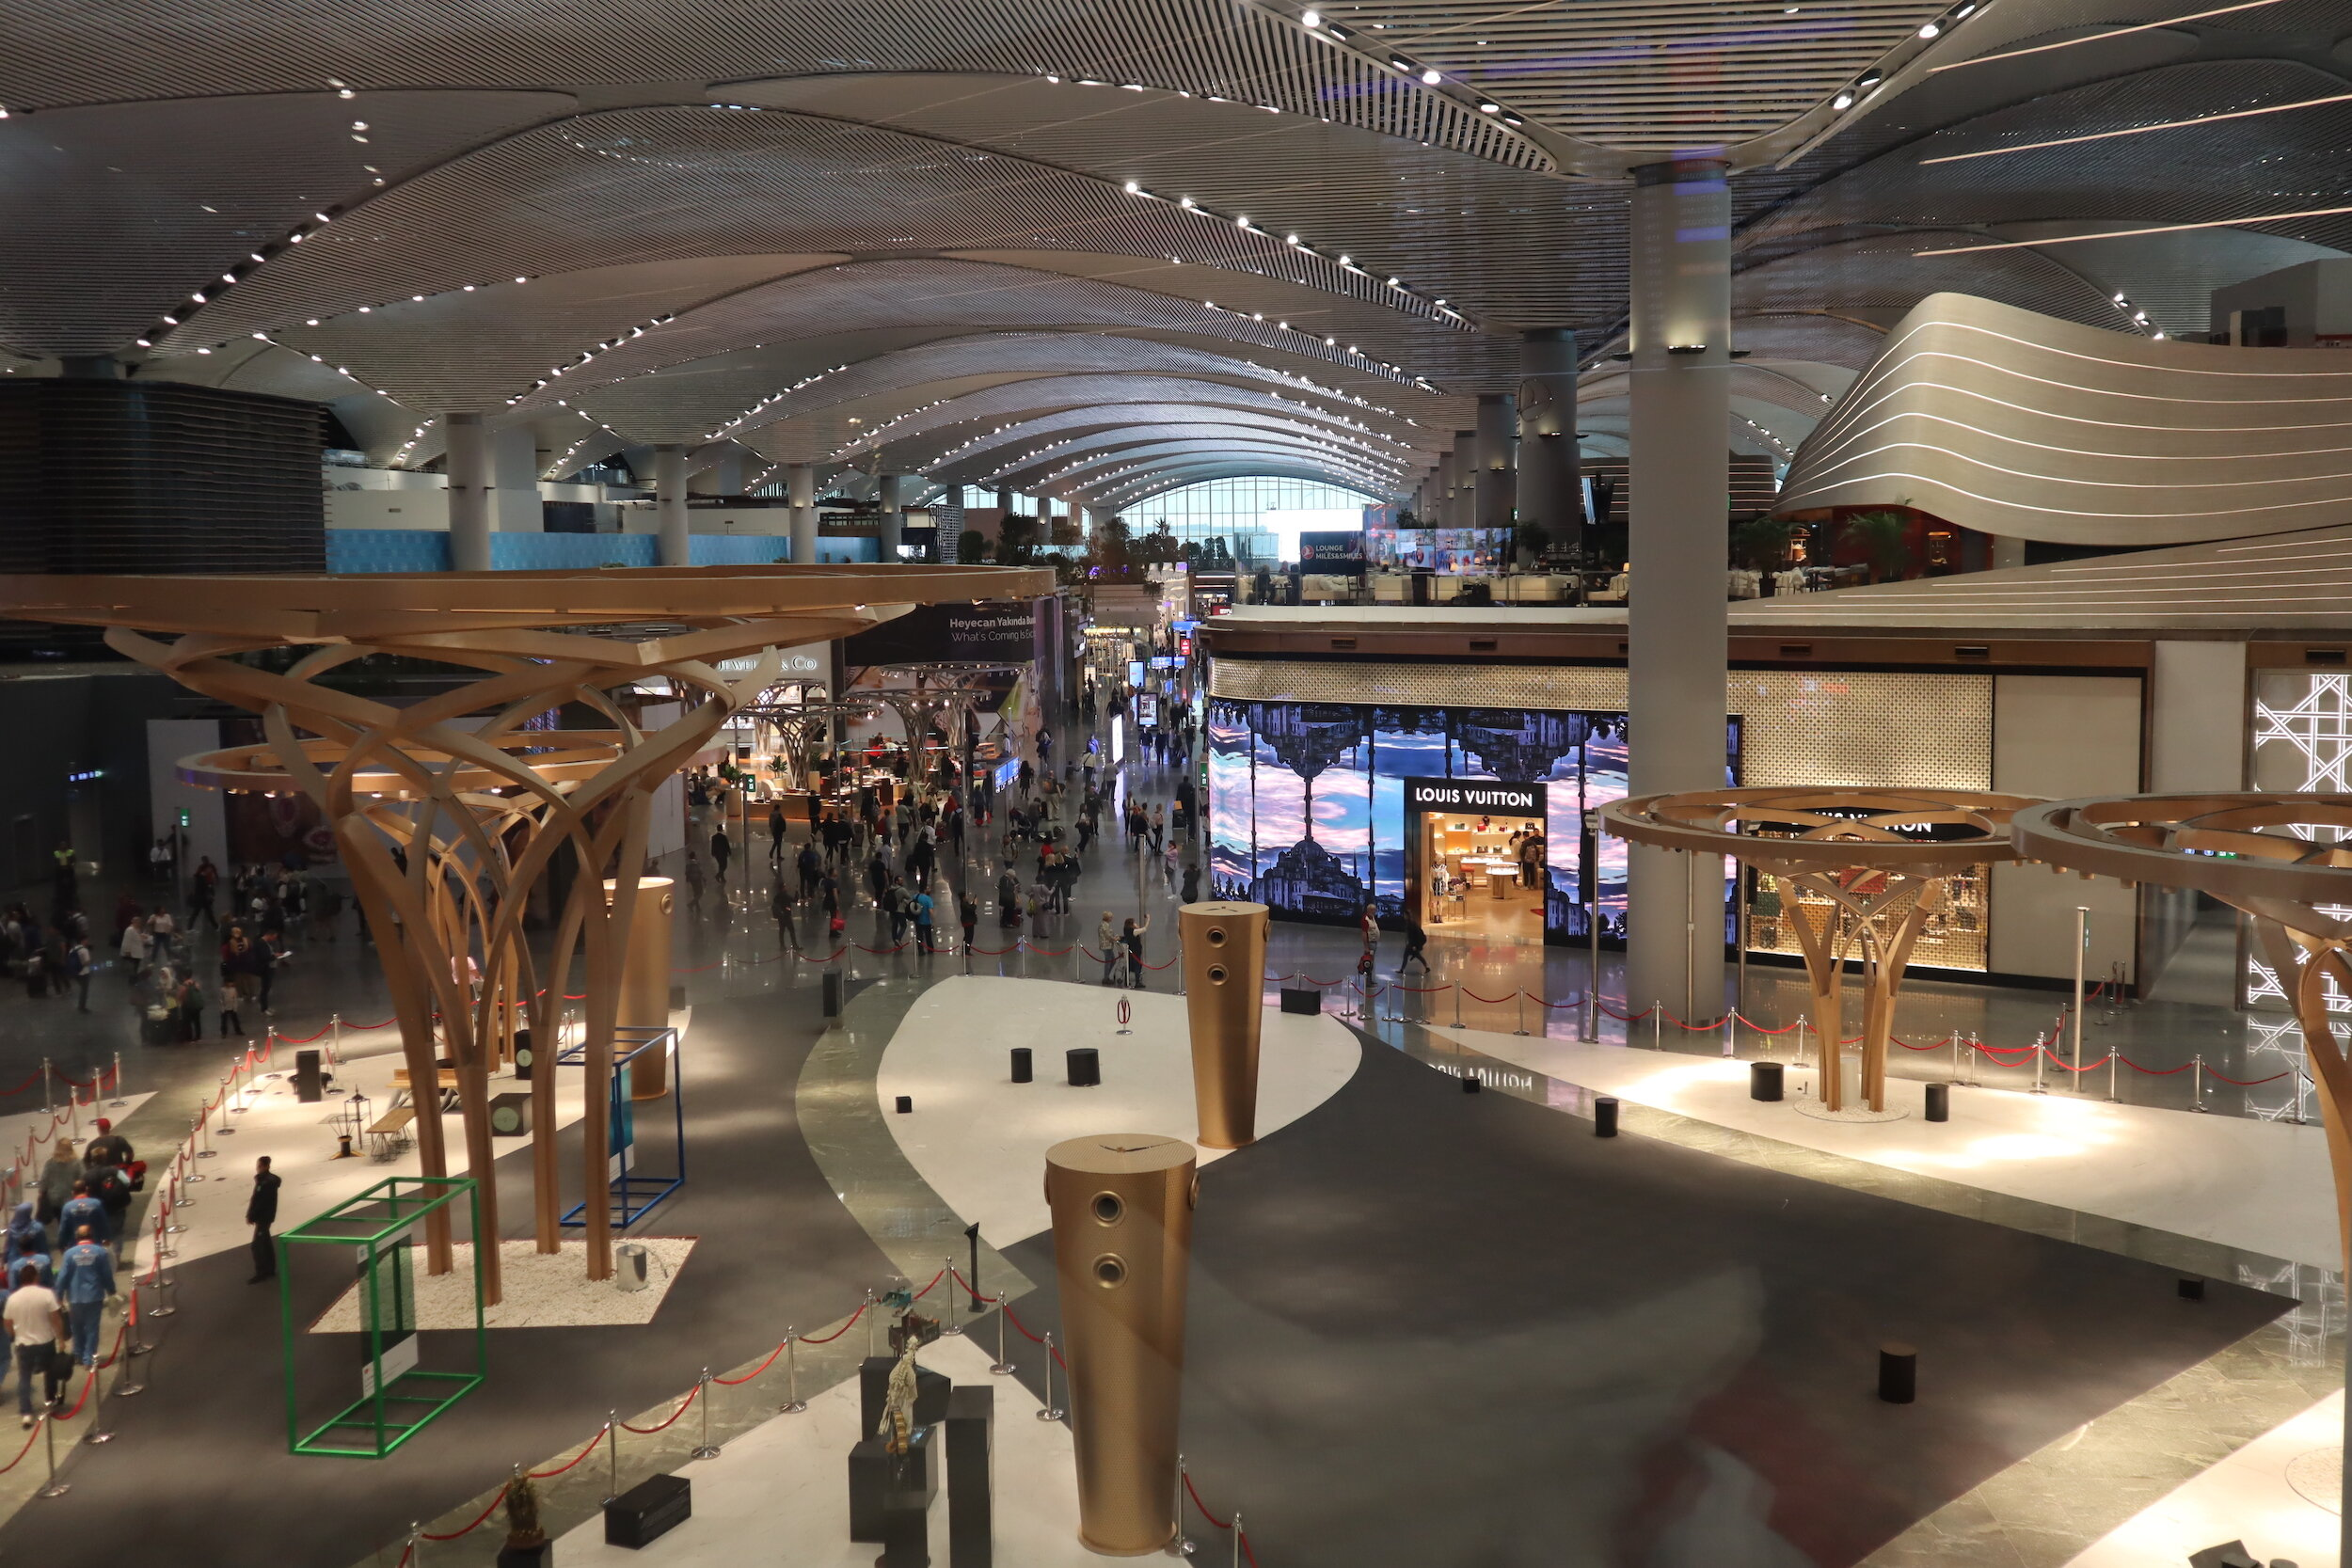 Turkish Airlines Business Lounge Istanbul – View of airport concourse